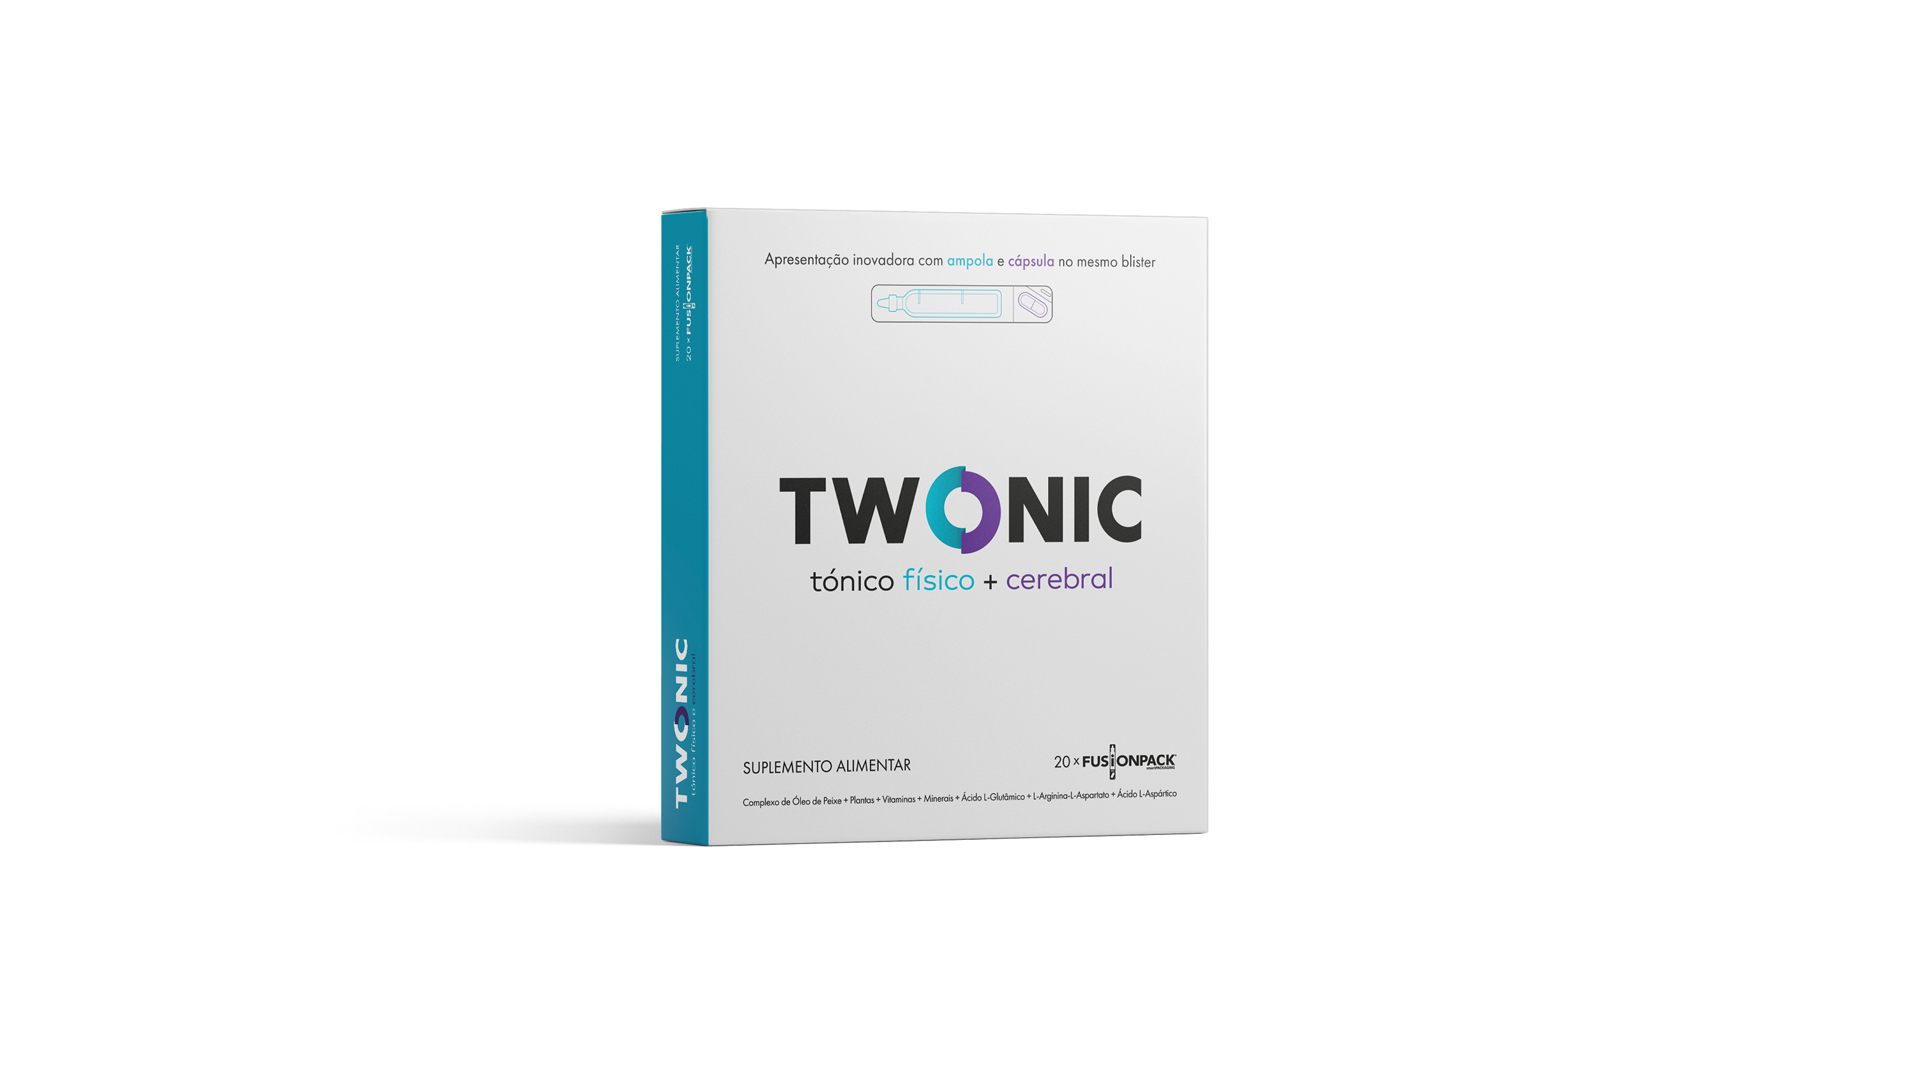 Wellness Brand Design packaging for TWONIC, a physical + brain tonic